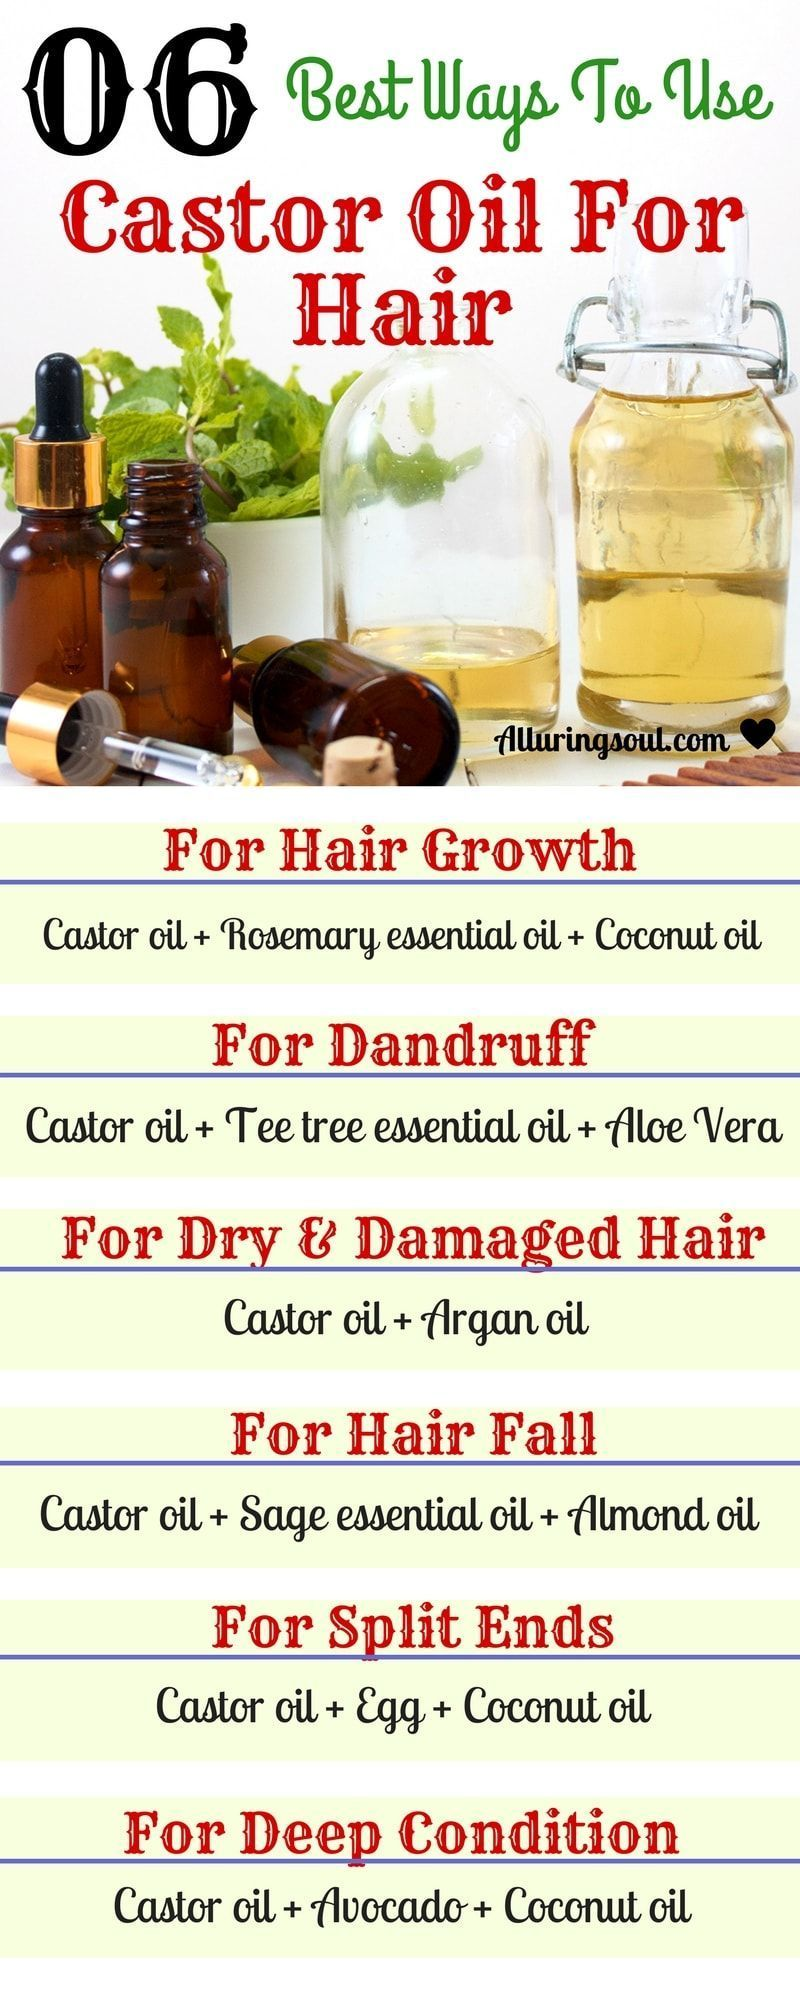 Castor Oil For Hair Problems Like Dandruff Baldness And Hair Fall In Hindi